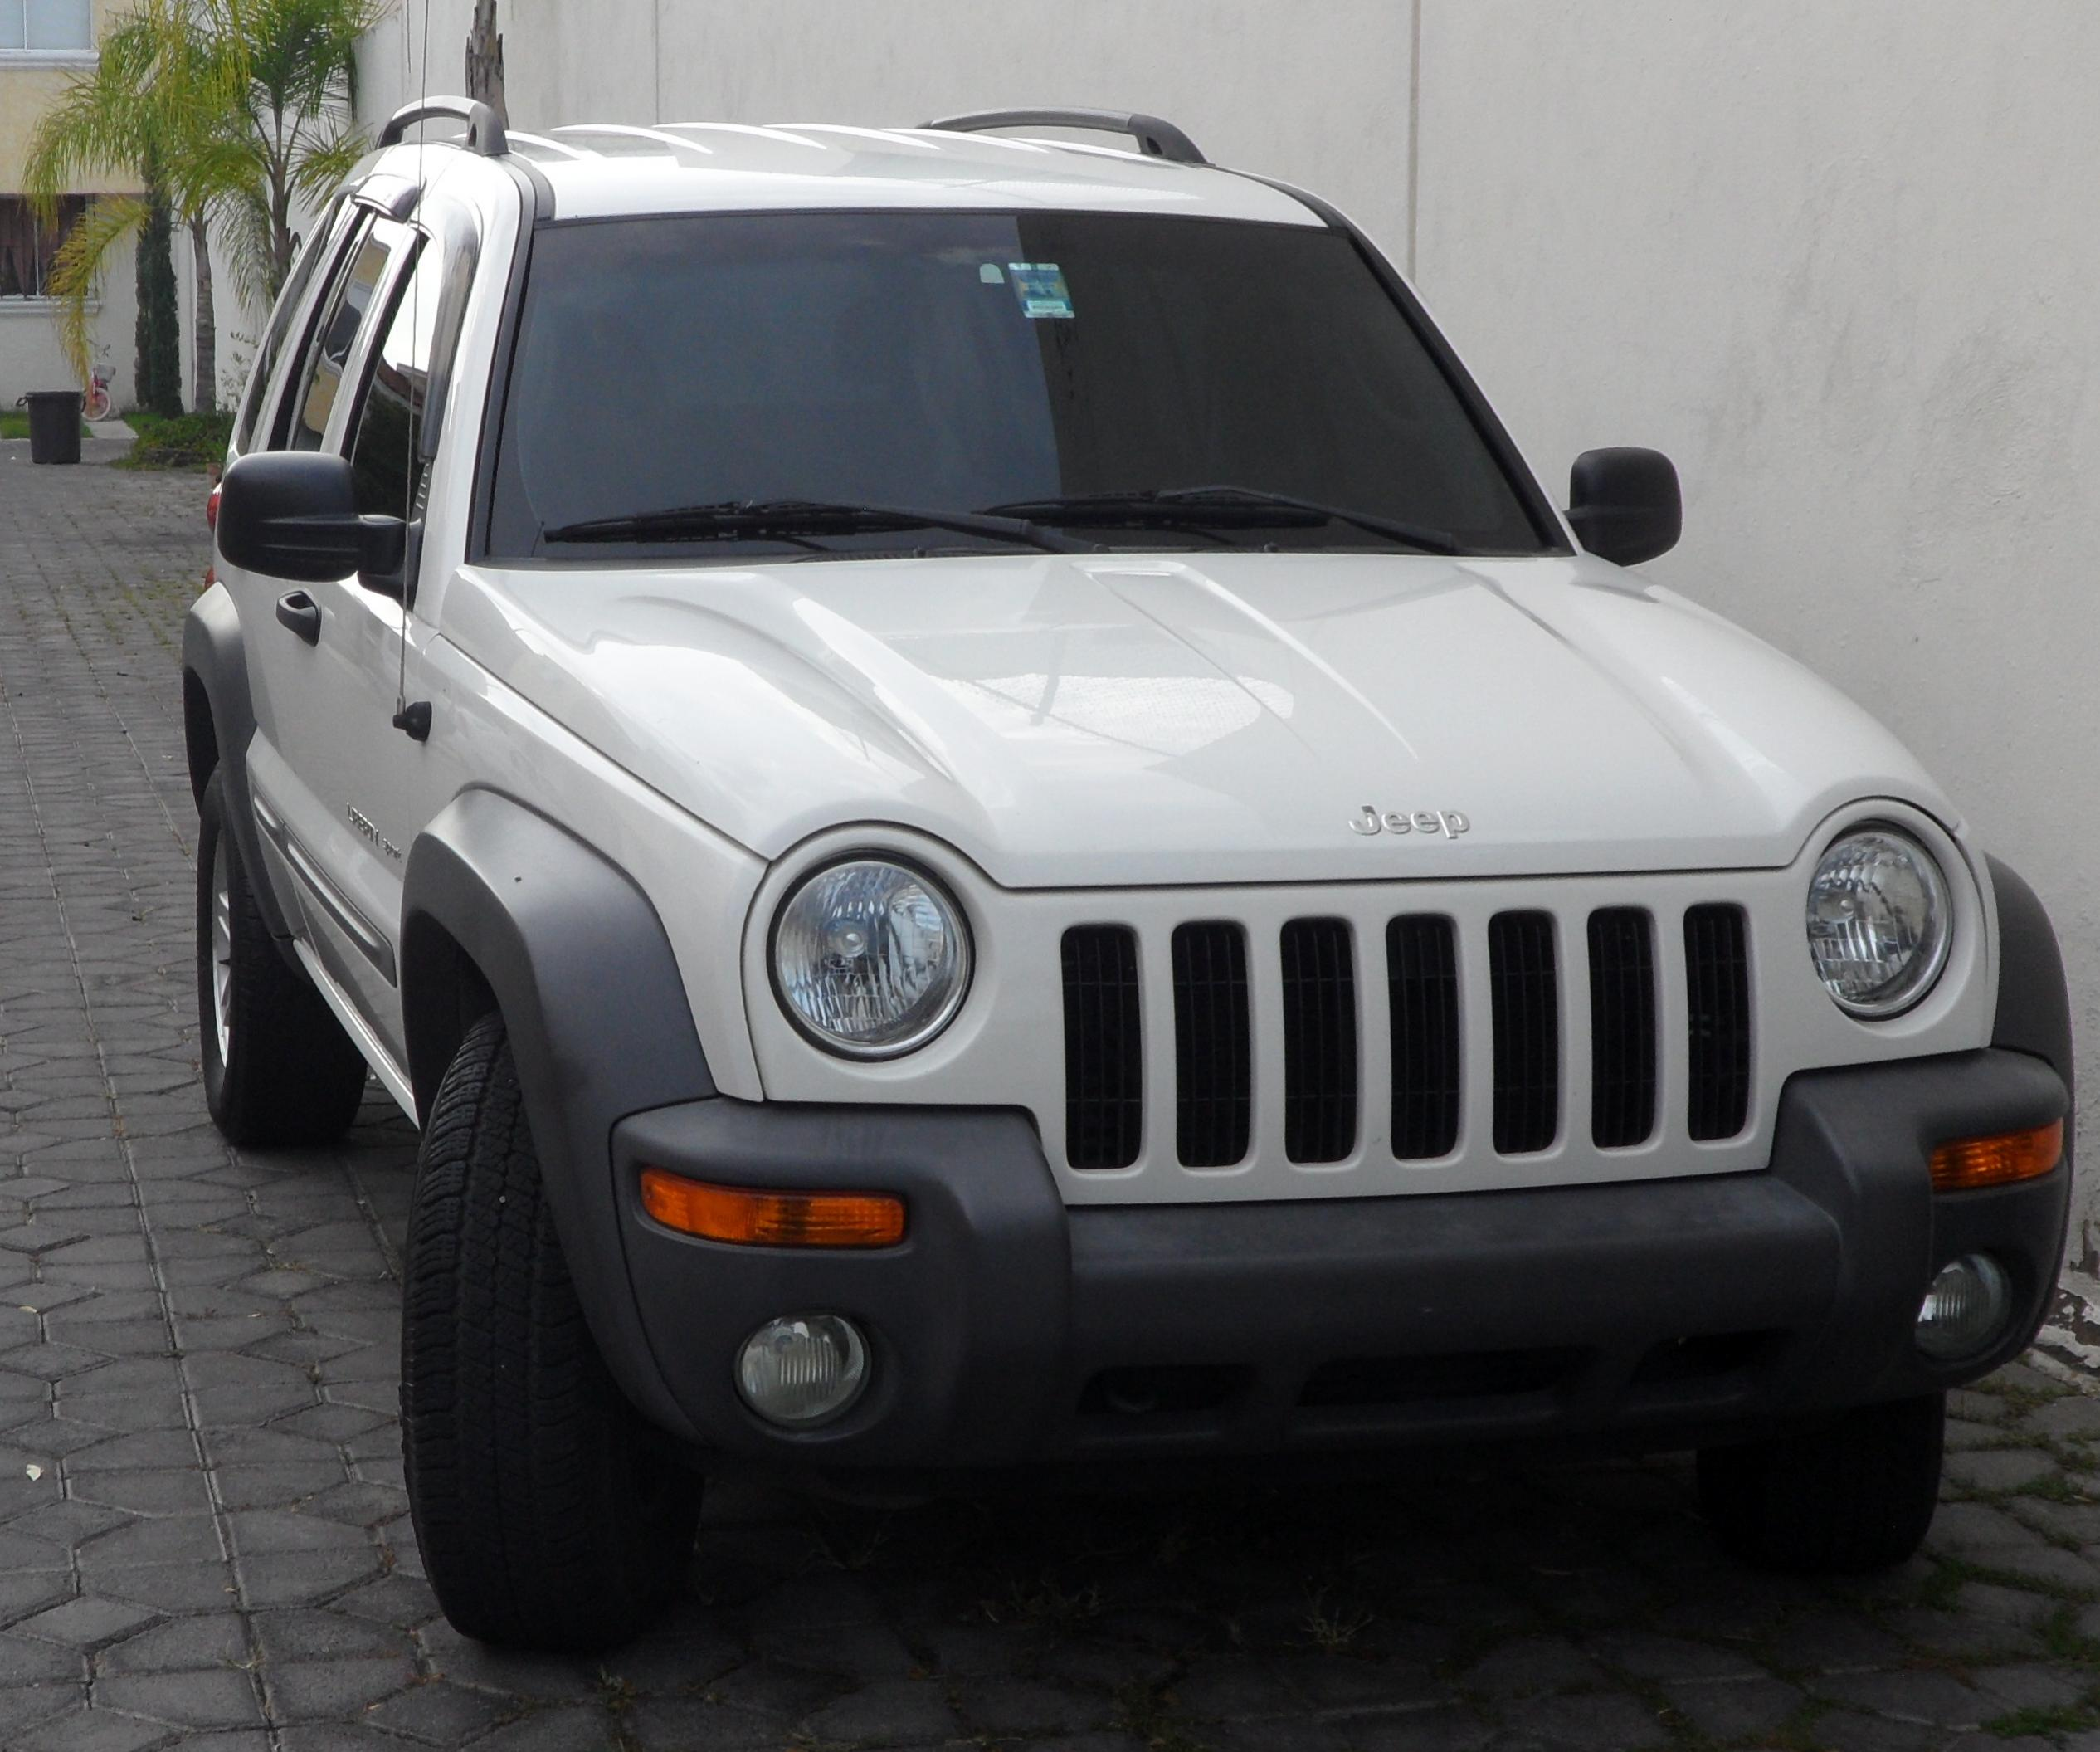 Sale!!! Jeep liberty sport 2002, tv, bed, dryer and washer and more ...